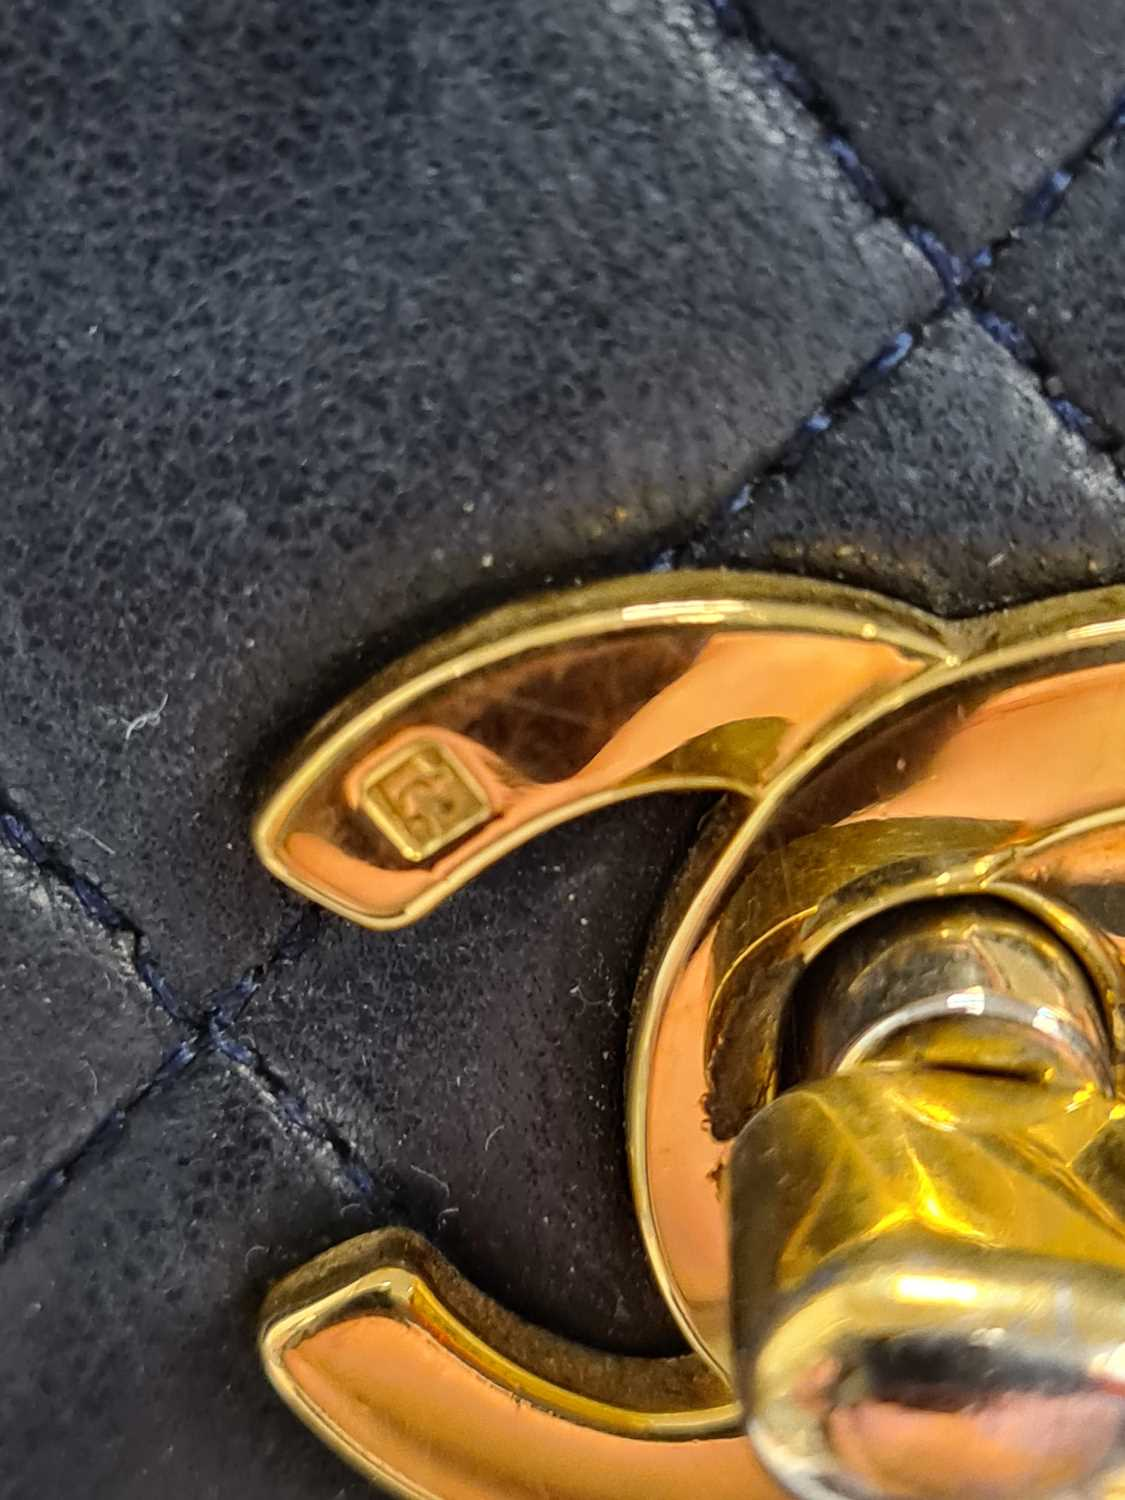 Chanel. A classic quilted leather handbag, of tapered square design, with gold tone CC logo clasp, - Image 25 of 26